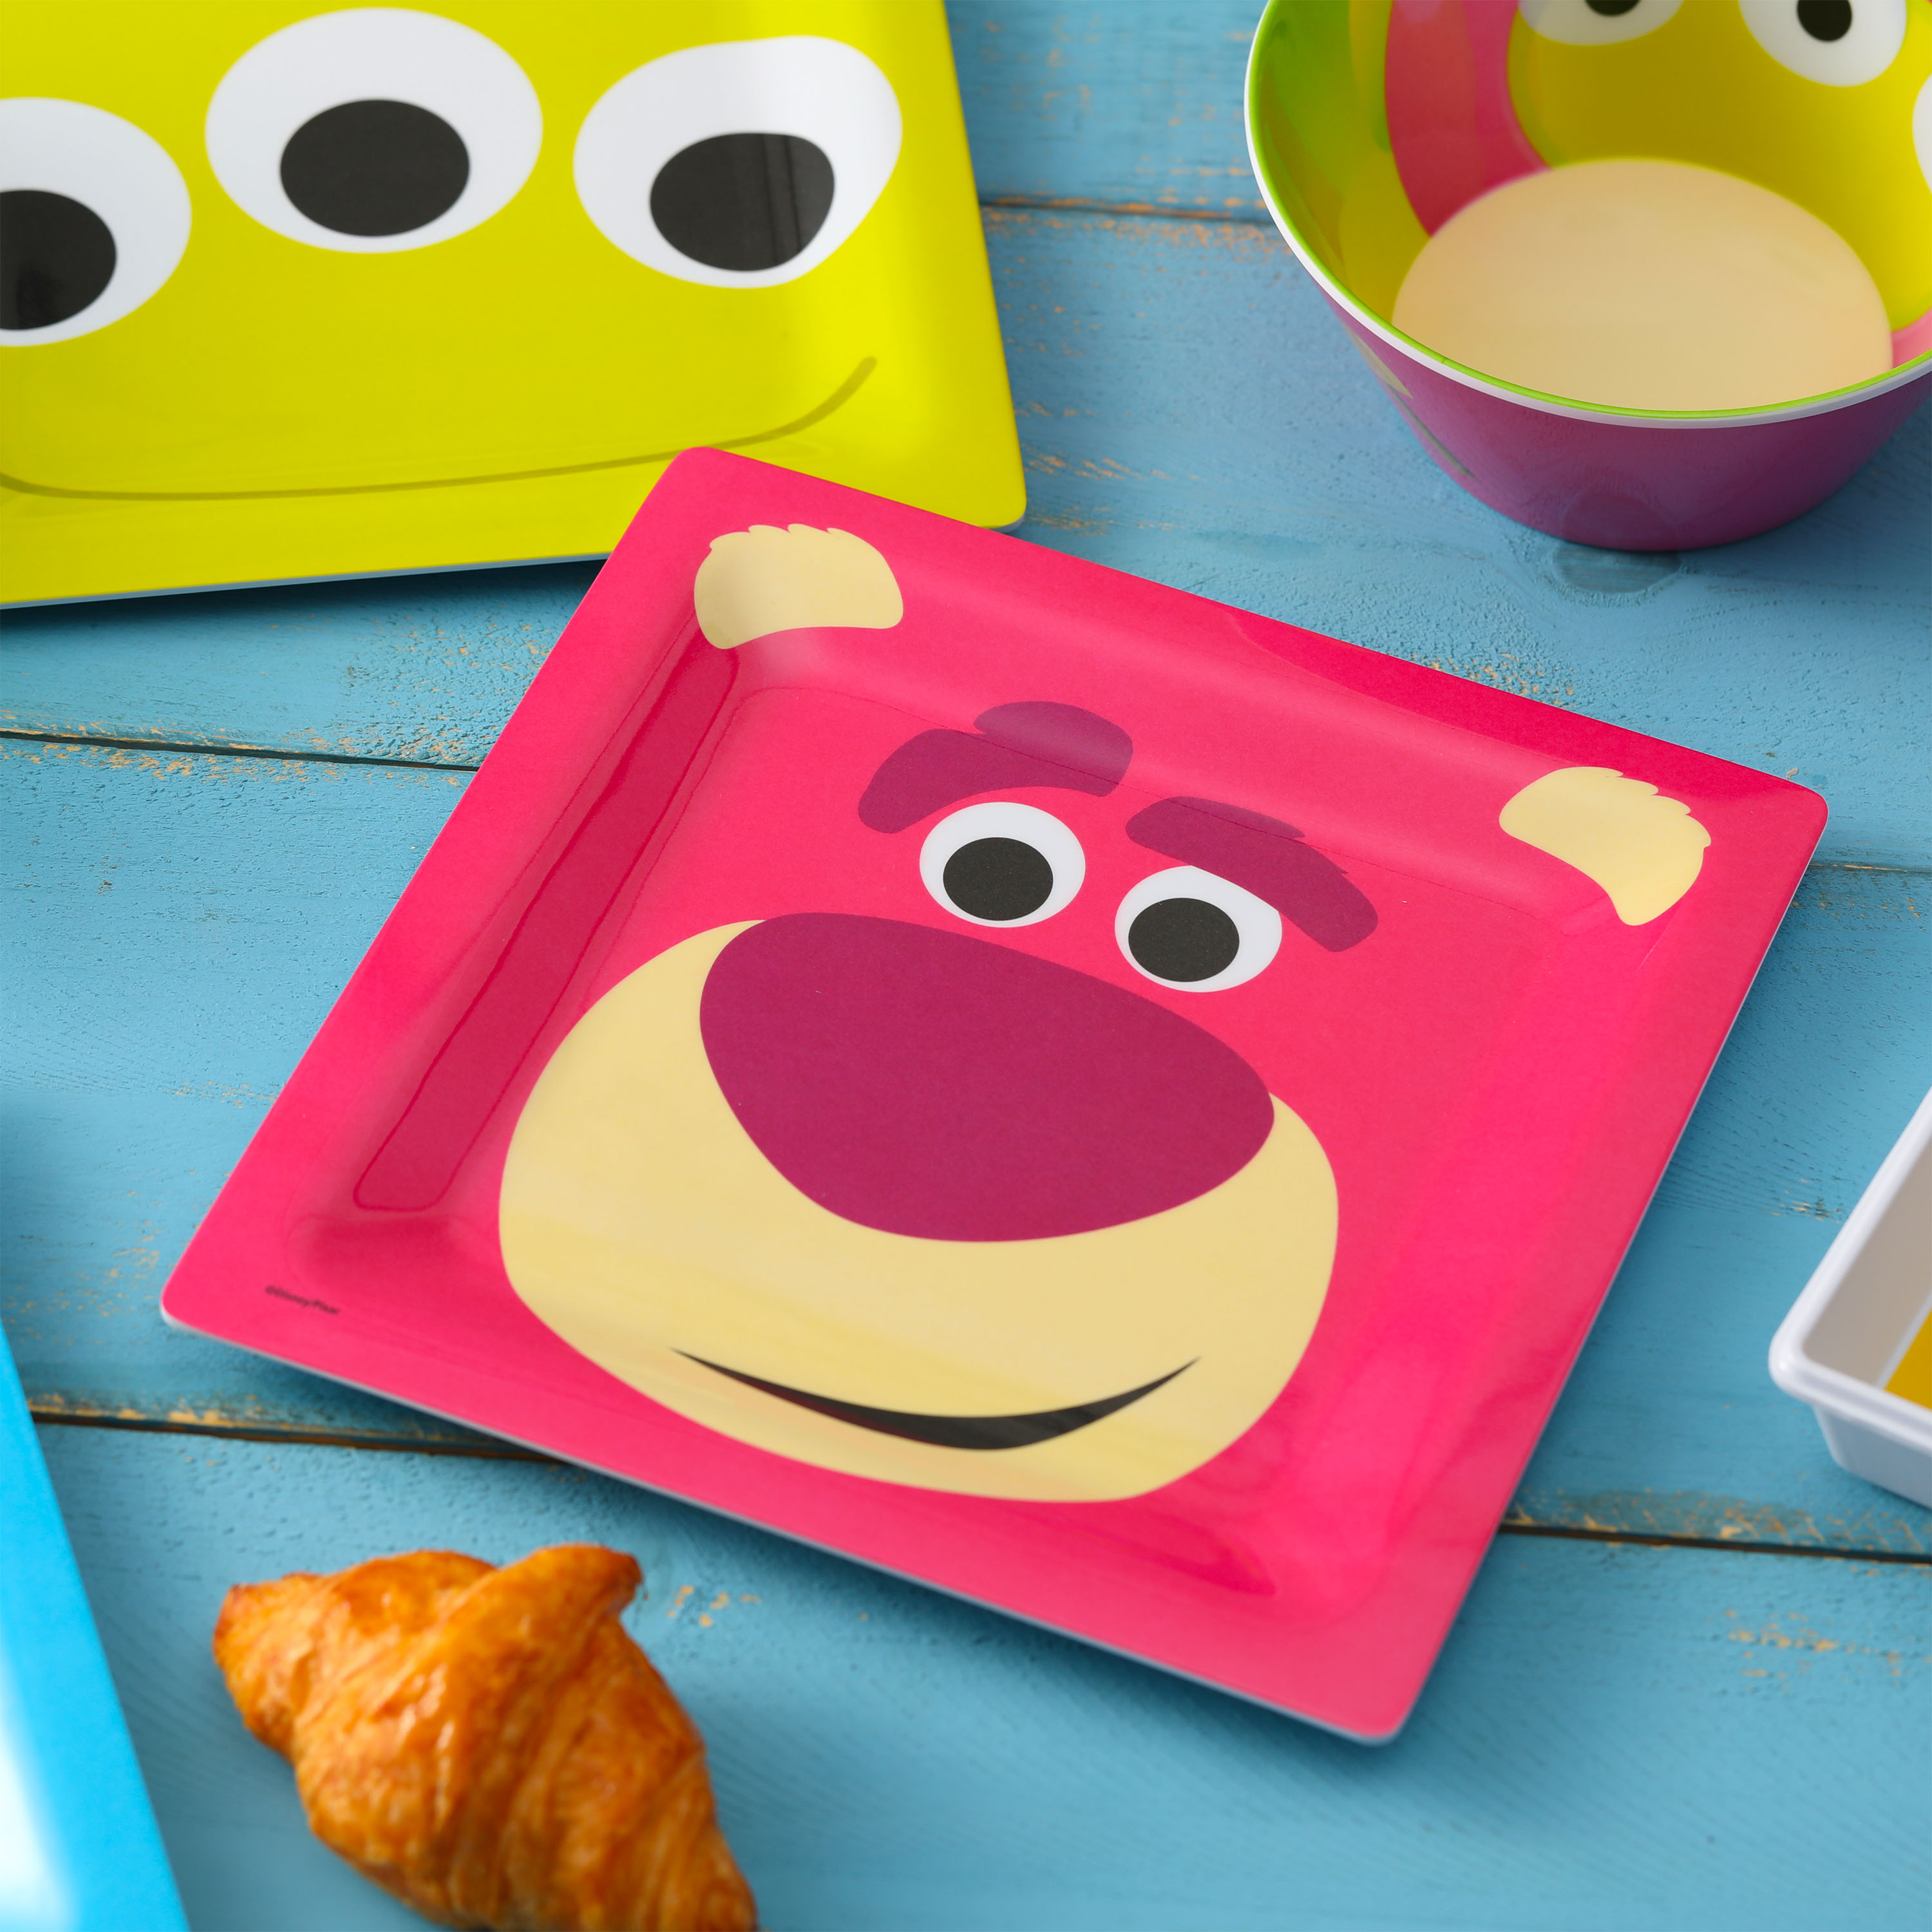 Disney and Pixar Toy Story 4 Plate and Bowl Set, Lotso, 2-piece set slideshow image 4